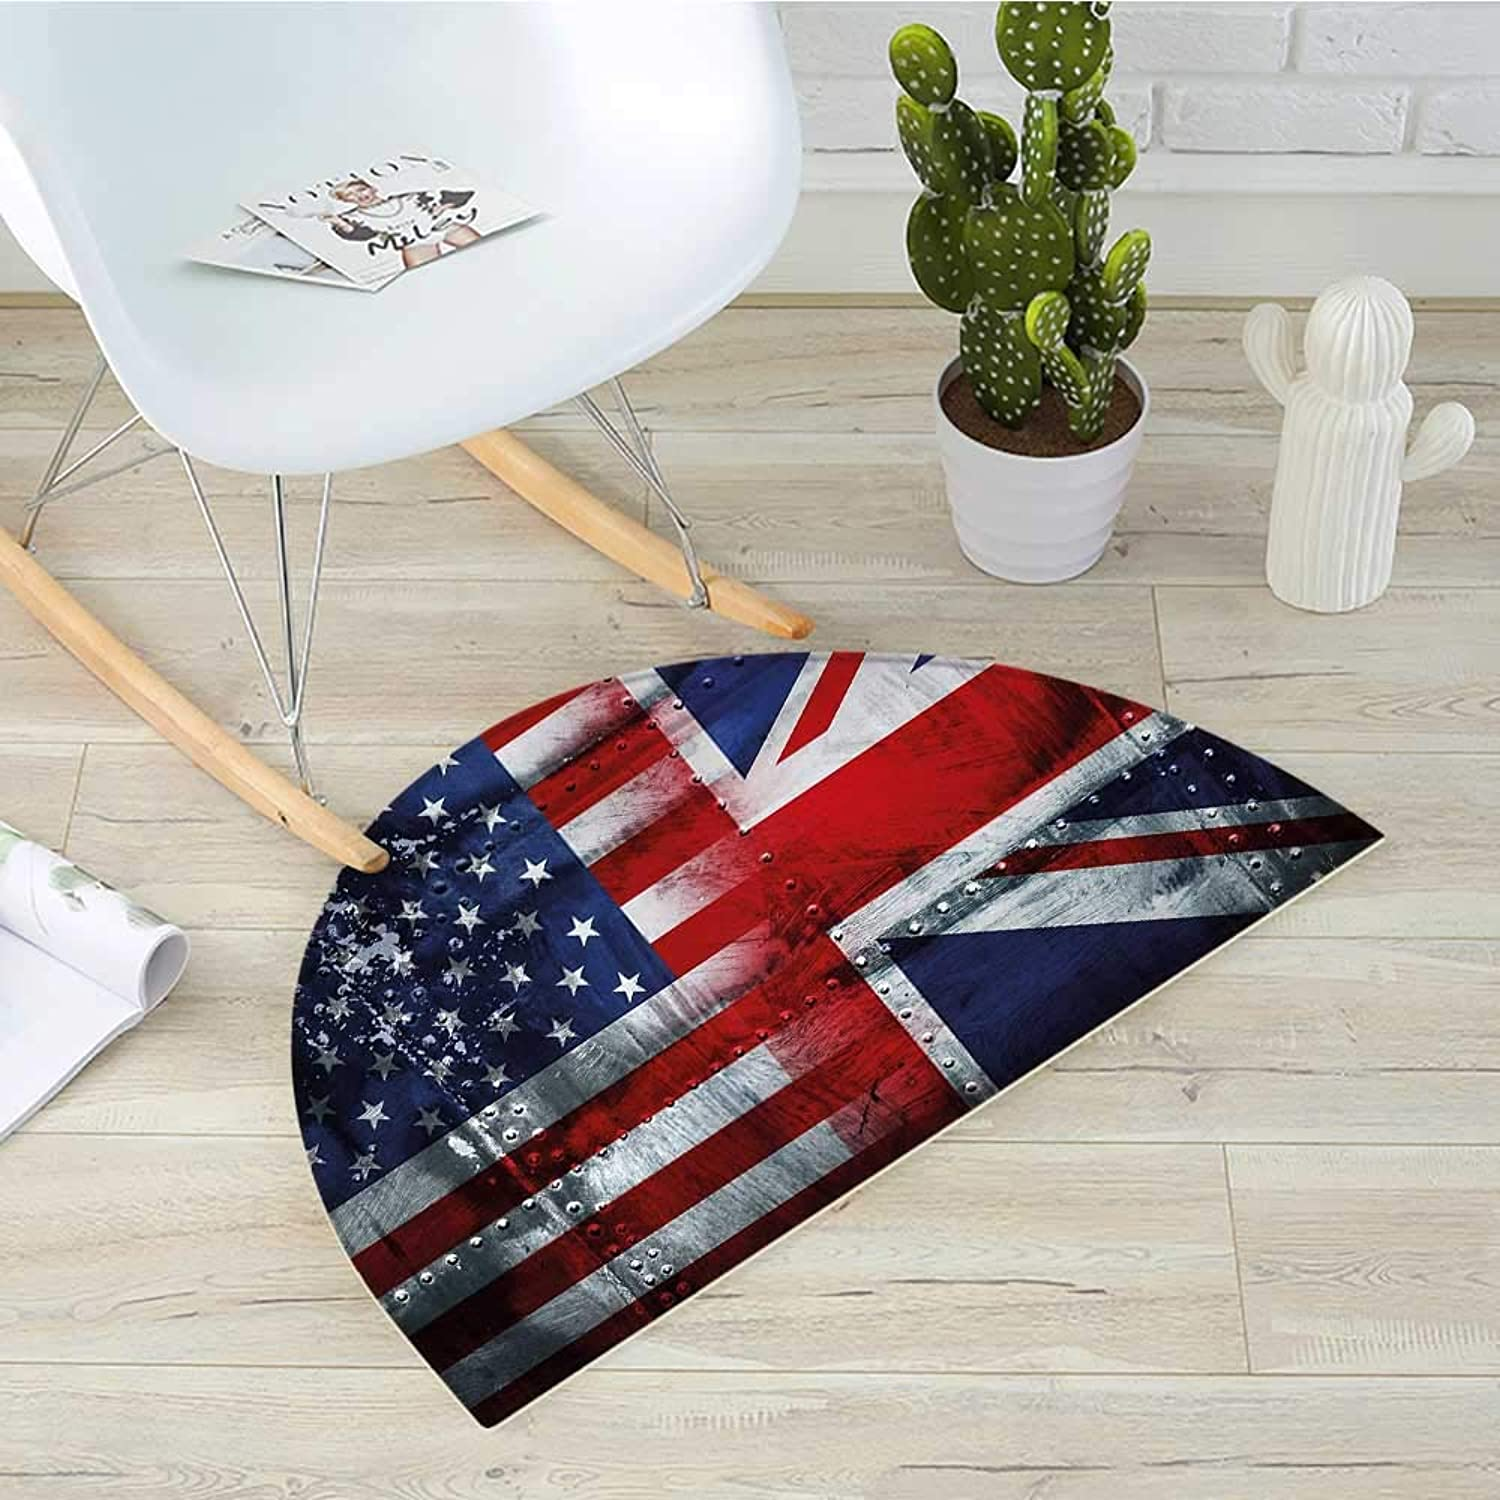 Union Jack Semicircle Doormat Alliance Togetherness Theme Composition of UK and USA Flags Vintage Halfmoon doormats H 35.4  xD 53.1  Navy bluee Red White